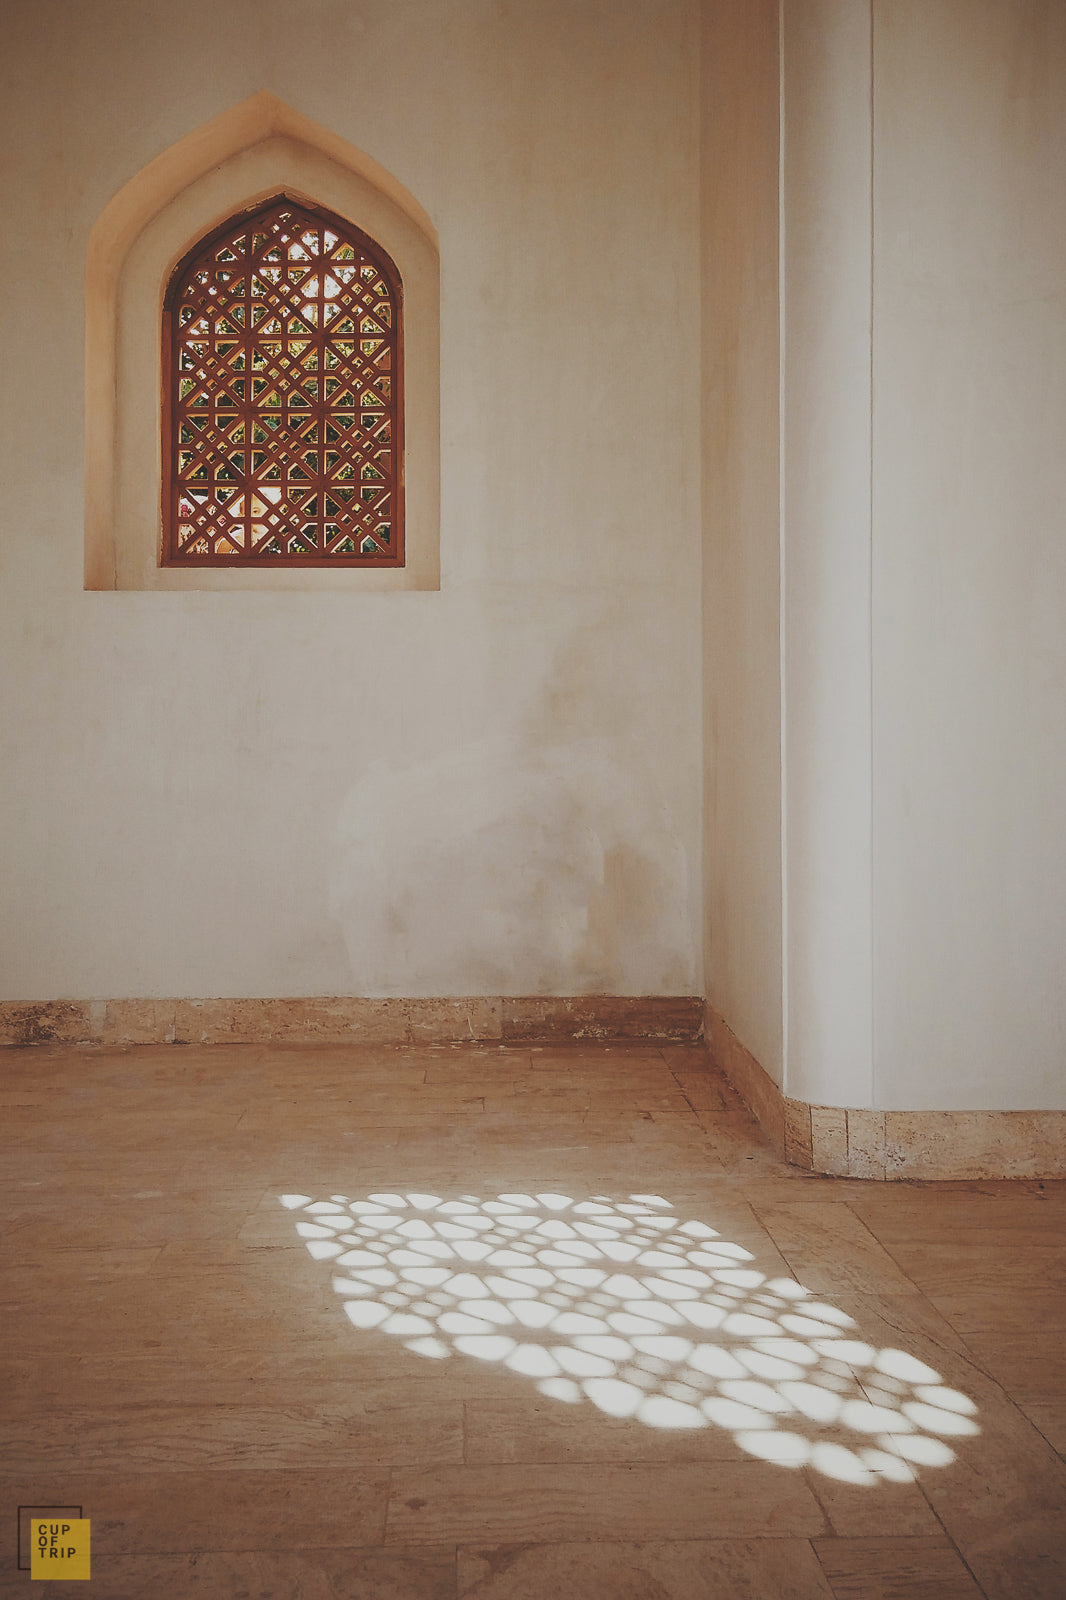 A Window in a Holy Place, Abyaneh